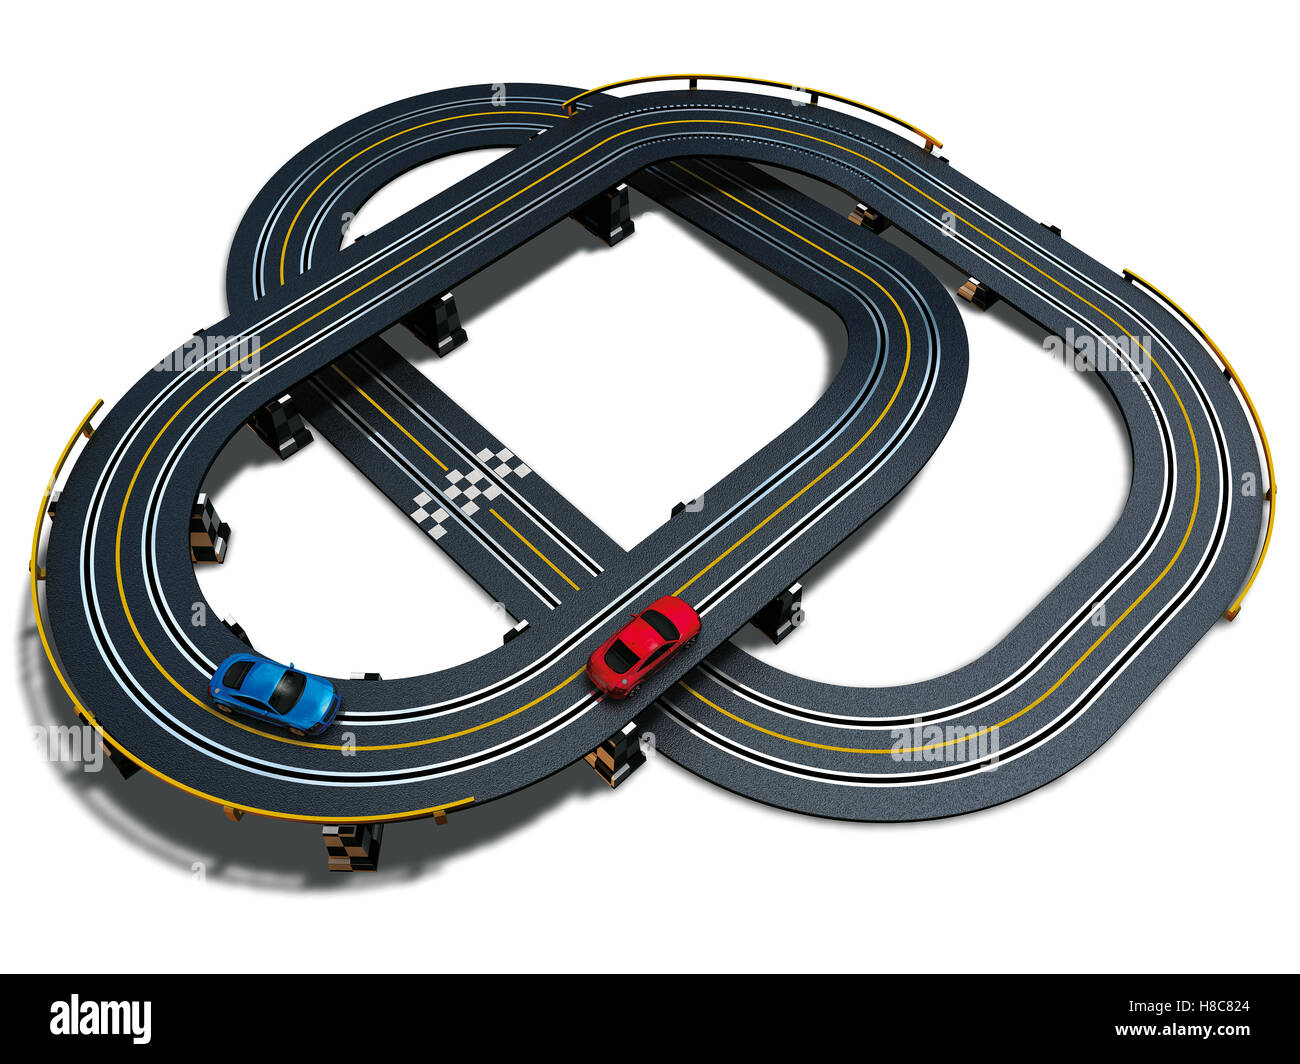 Motor Racing Track Stock Photos Images Wiring Raceway Toy Image